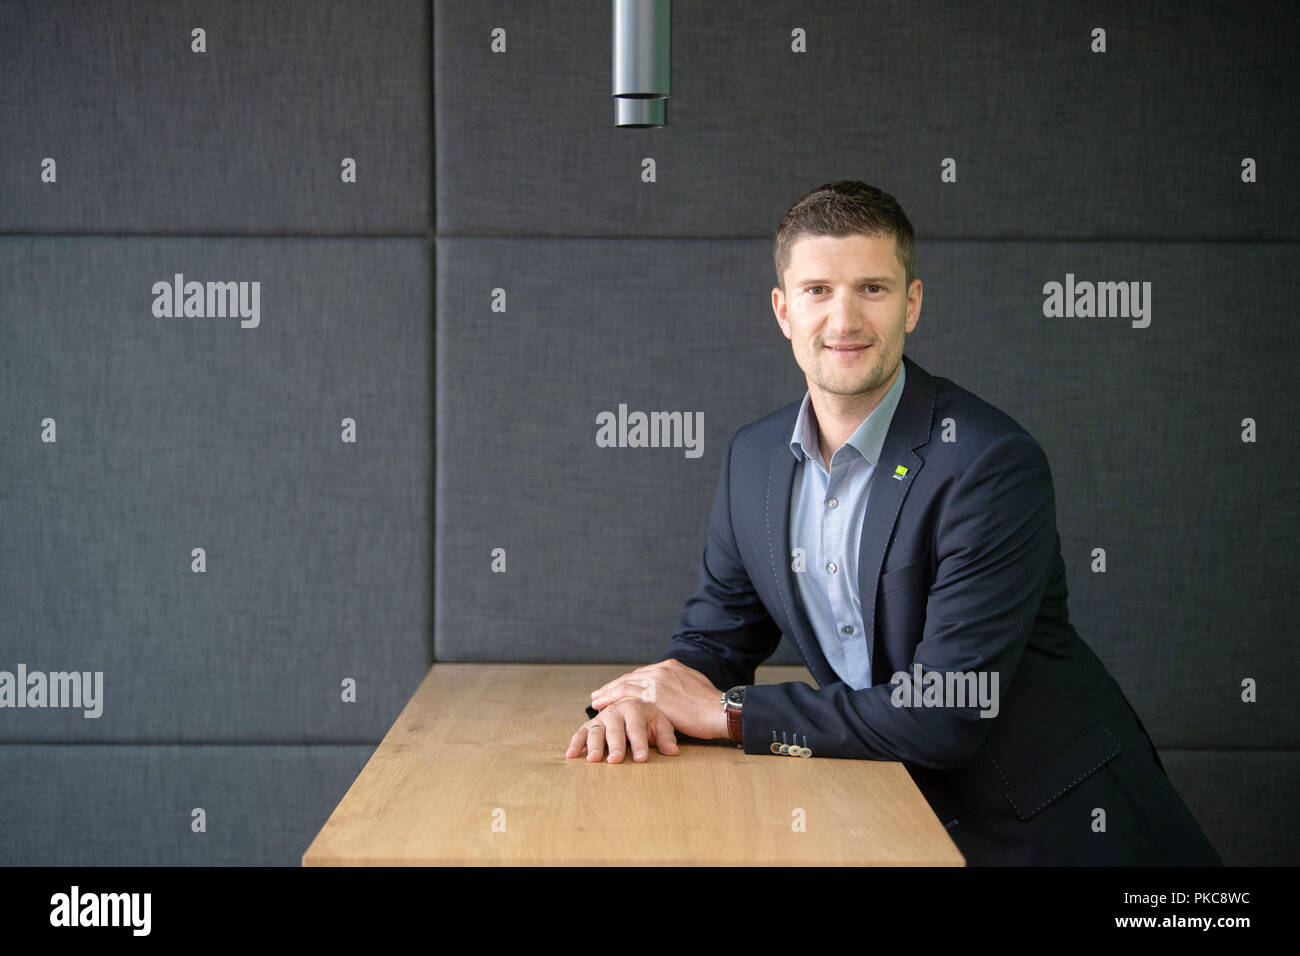 """12 September 2018, Baden-Wuerttemberg, Waeschenbeuren: 12 September 2018, Germany, Waeschenbeuren: Manuel Nader, head of the German headquarters of the smart home provider Loxone, is standing at a table. Loxone settled in Waeschenbeuren east of Stuttgart some time ago and relies on self-contained complete systems that can control various electronic components in a building. (on dpa """"Das Haus denkt mit - Wie Smart Homes das Leben verändern sollen"""" from 13.09) Photo: Marijan Murat/dpa Stock Photo"""